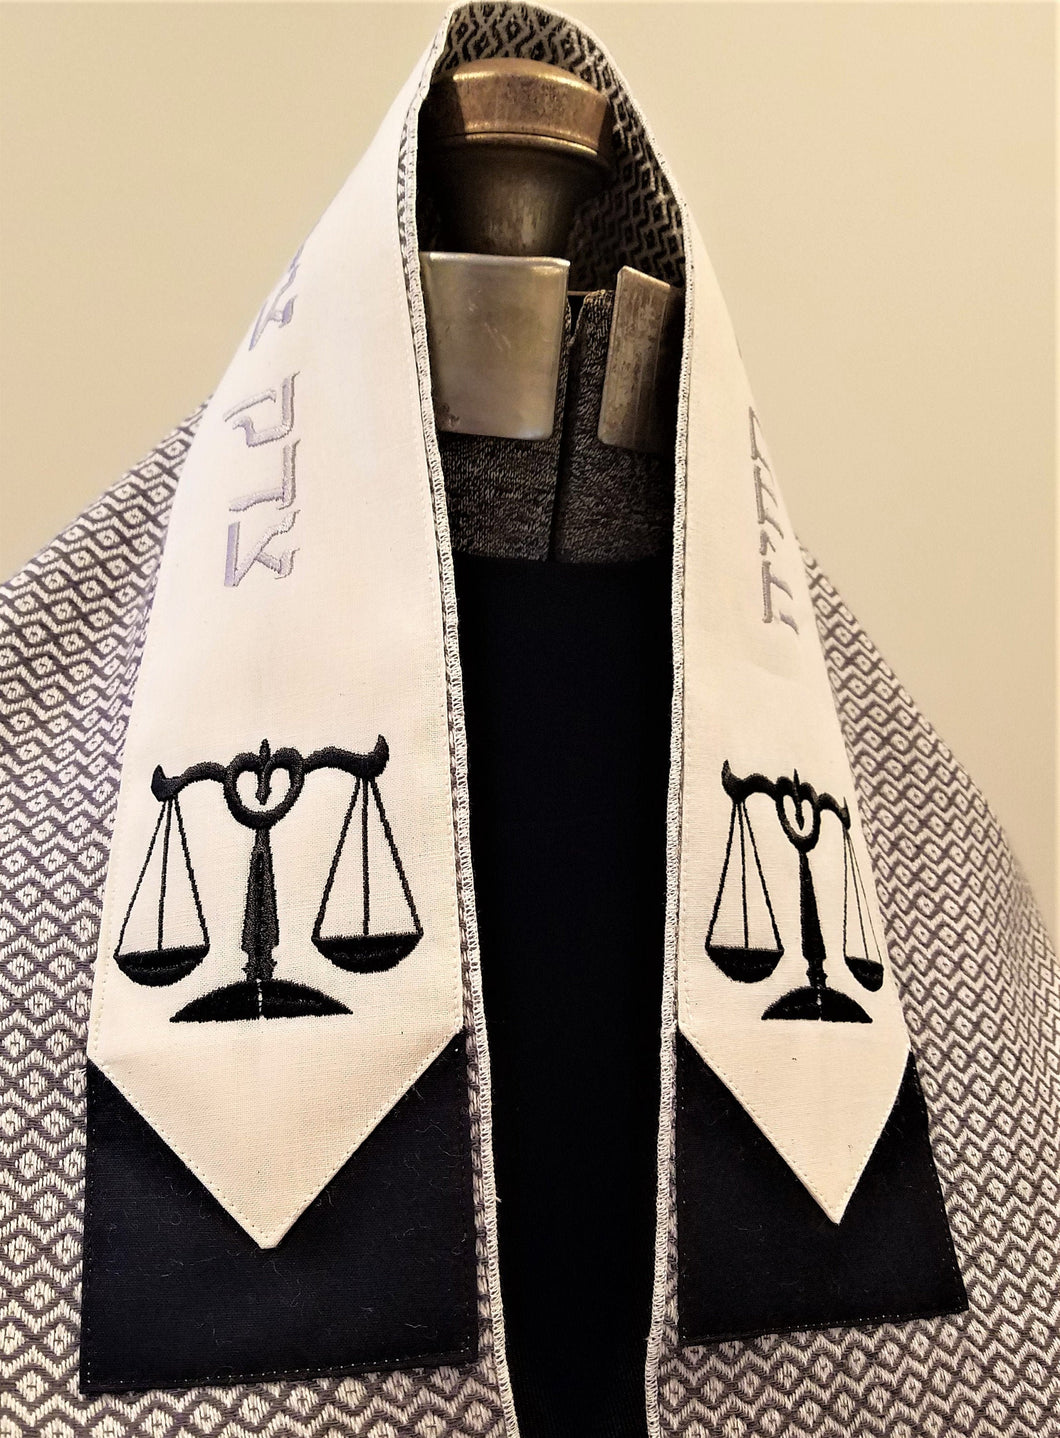 Black and White Justice Tallit